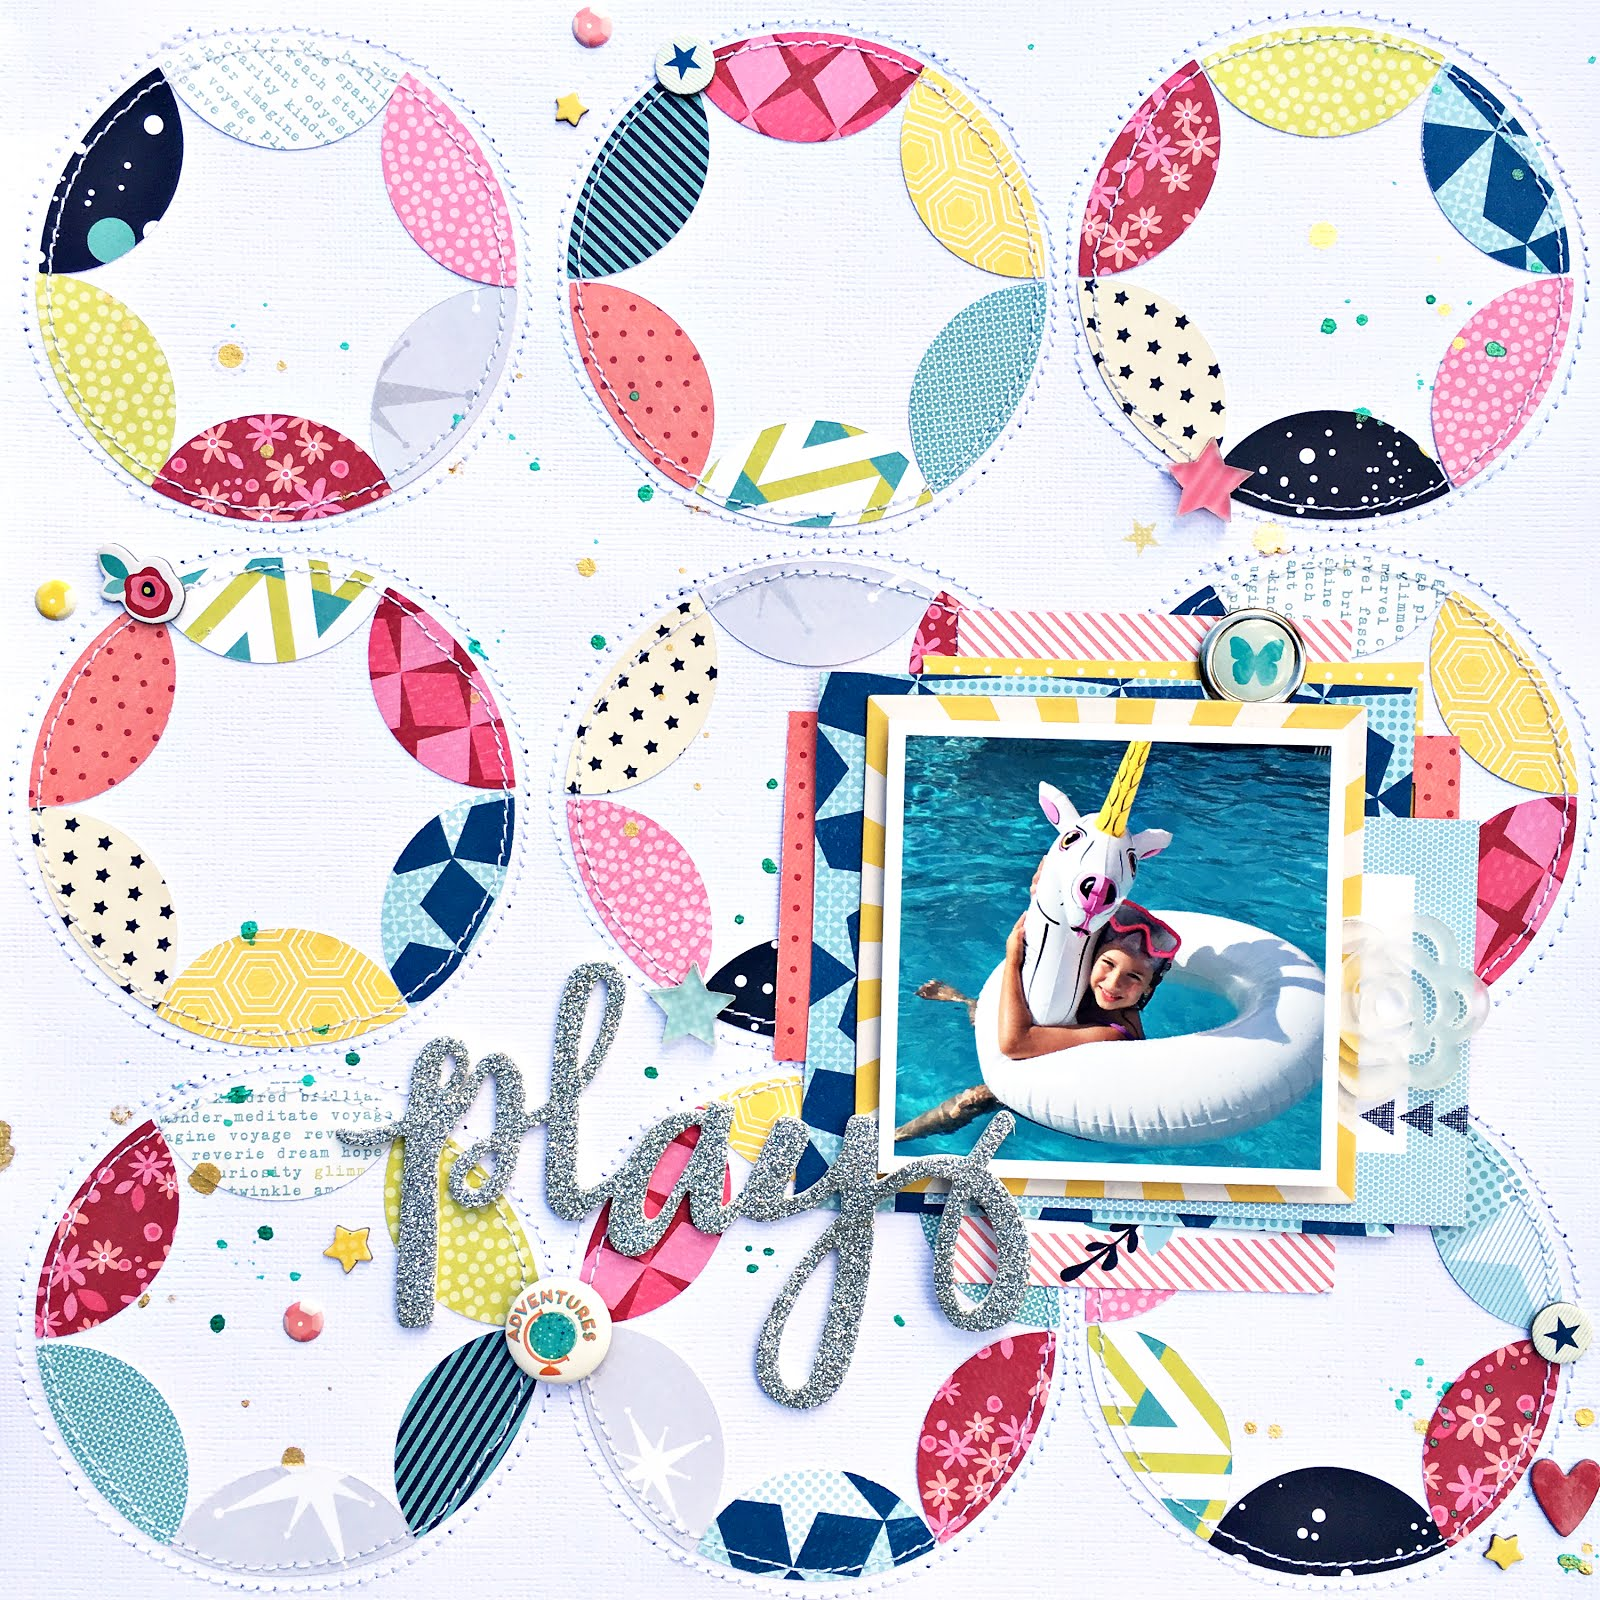 heather leopard  play scrapbook layout and free silhouette